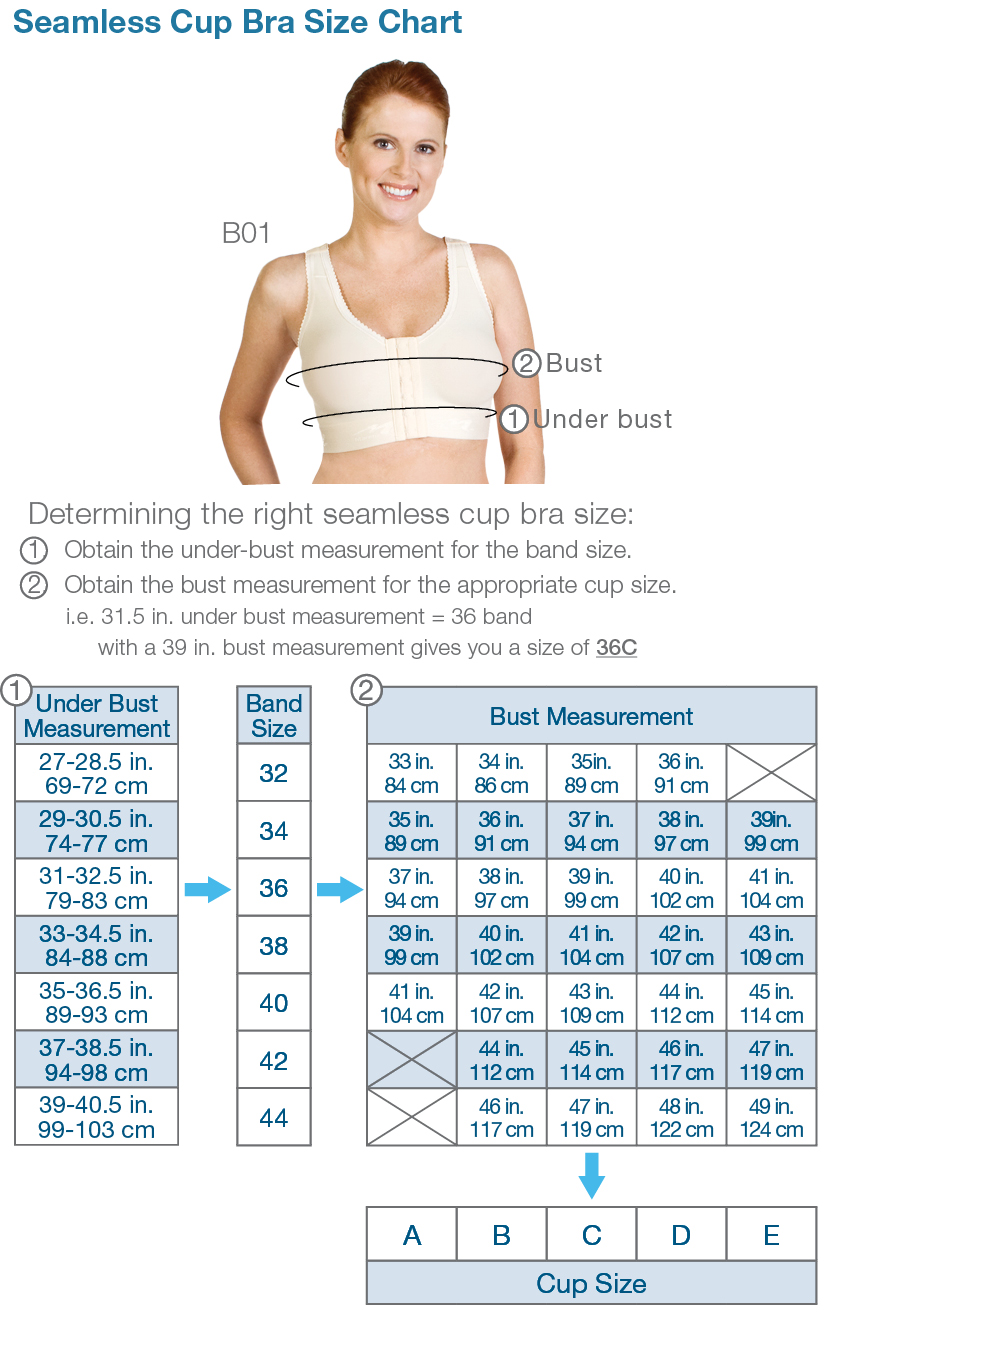 Breast Cup Size Measurement